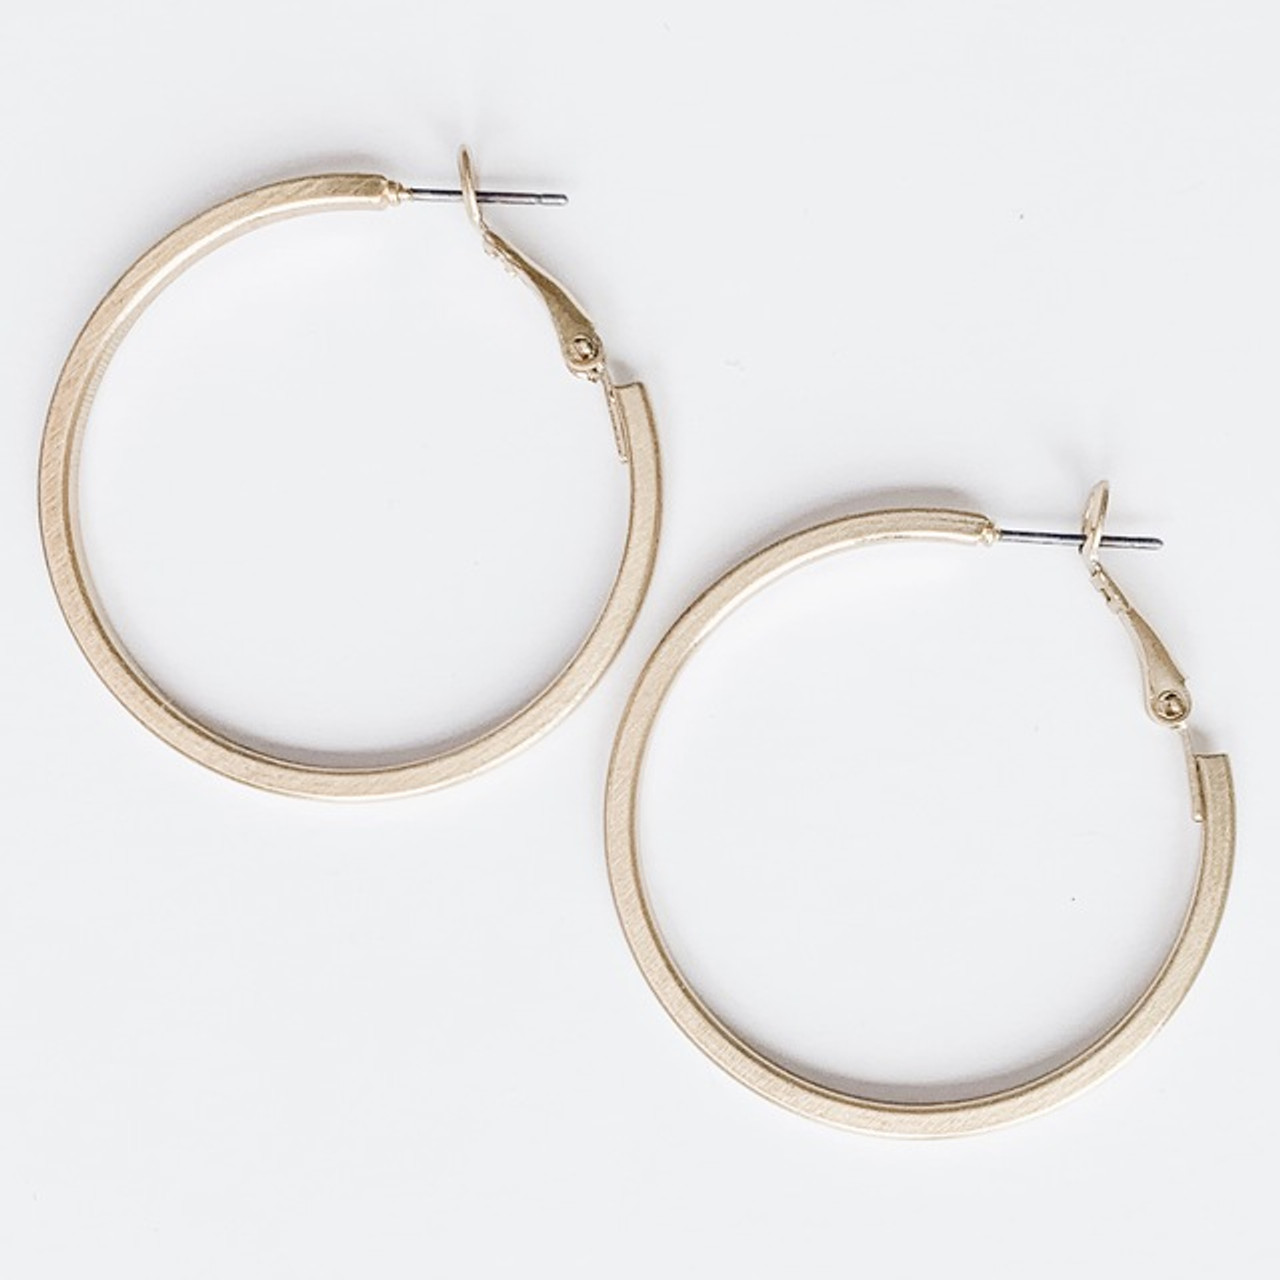 Your everyday gold hoop earrings, Nickel and lead free.